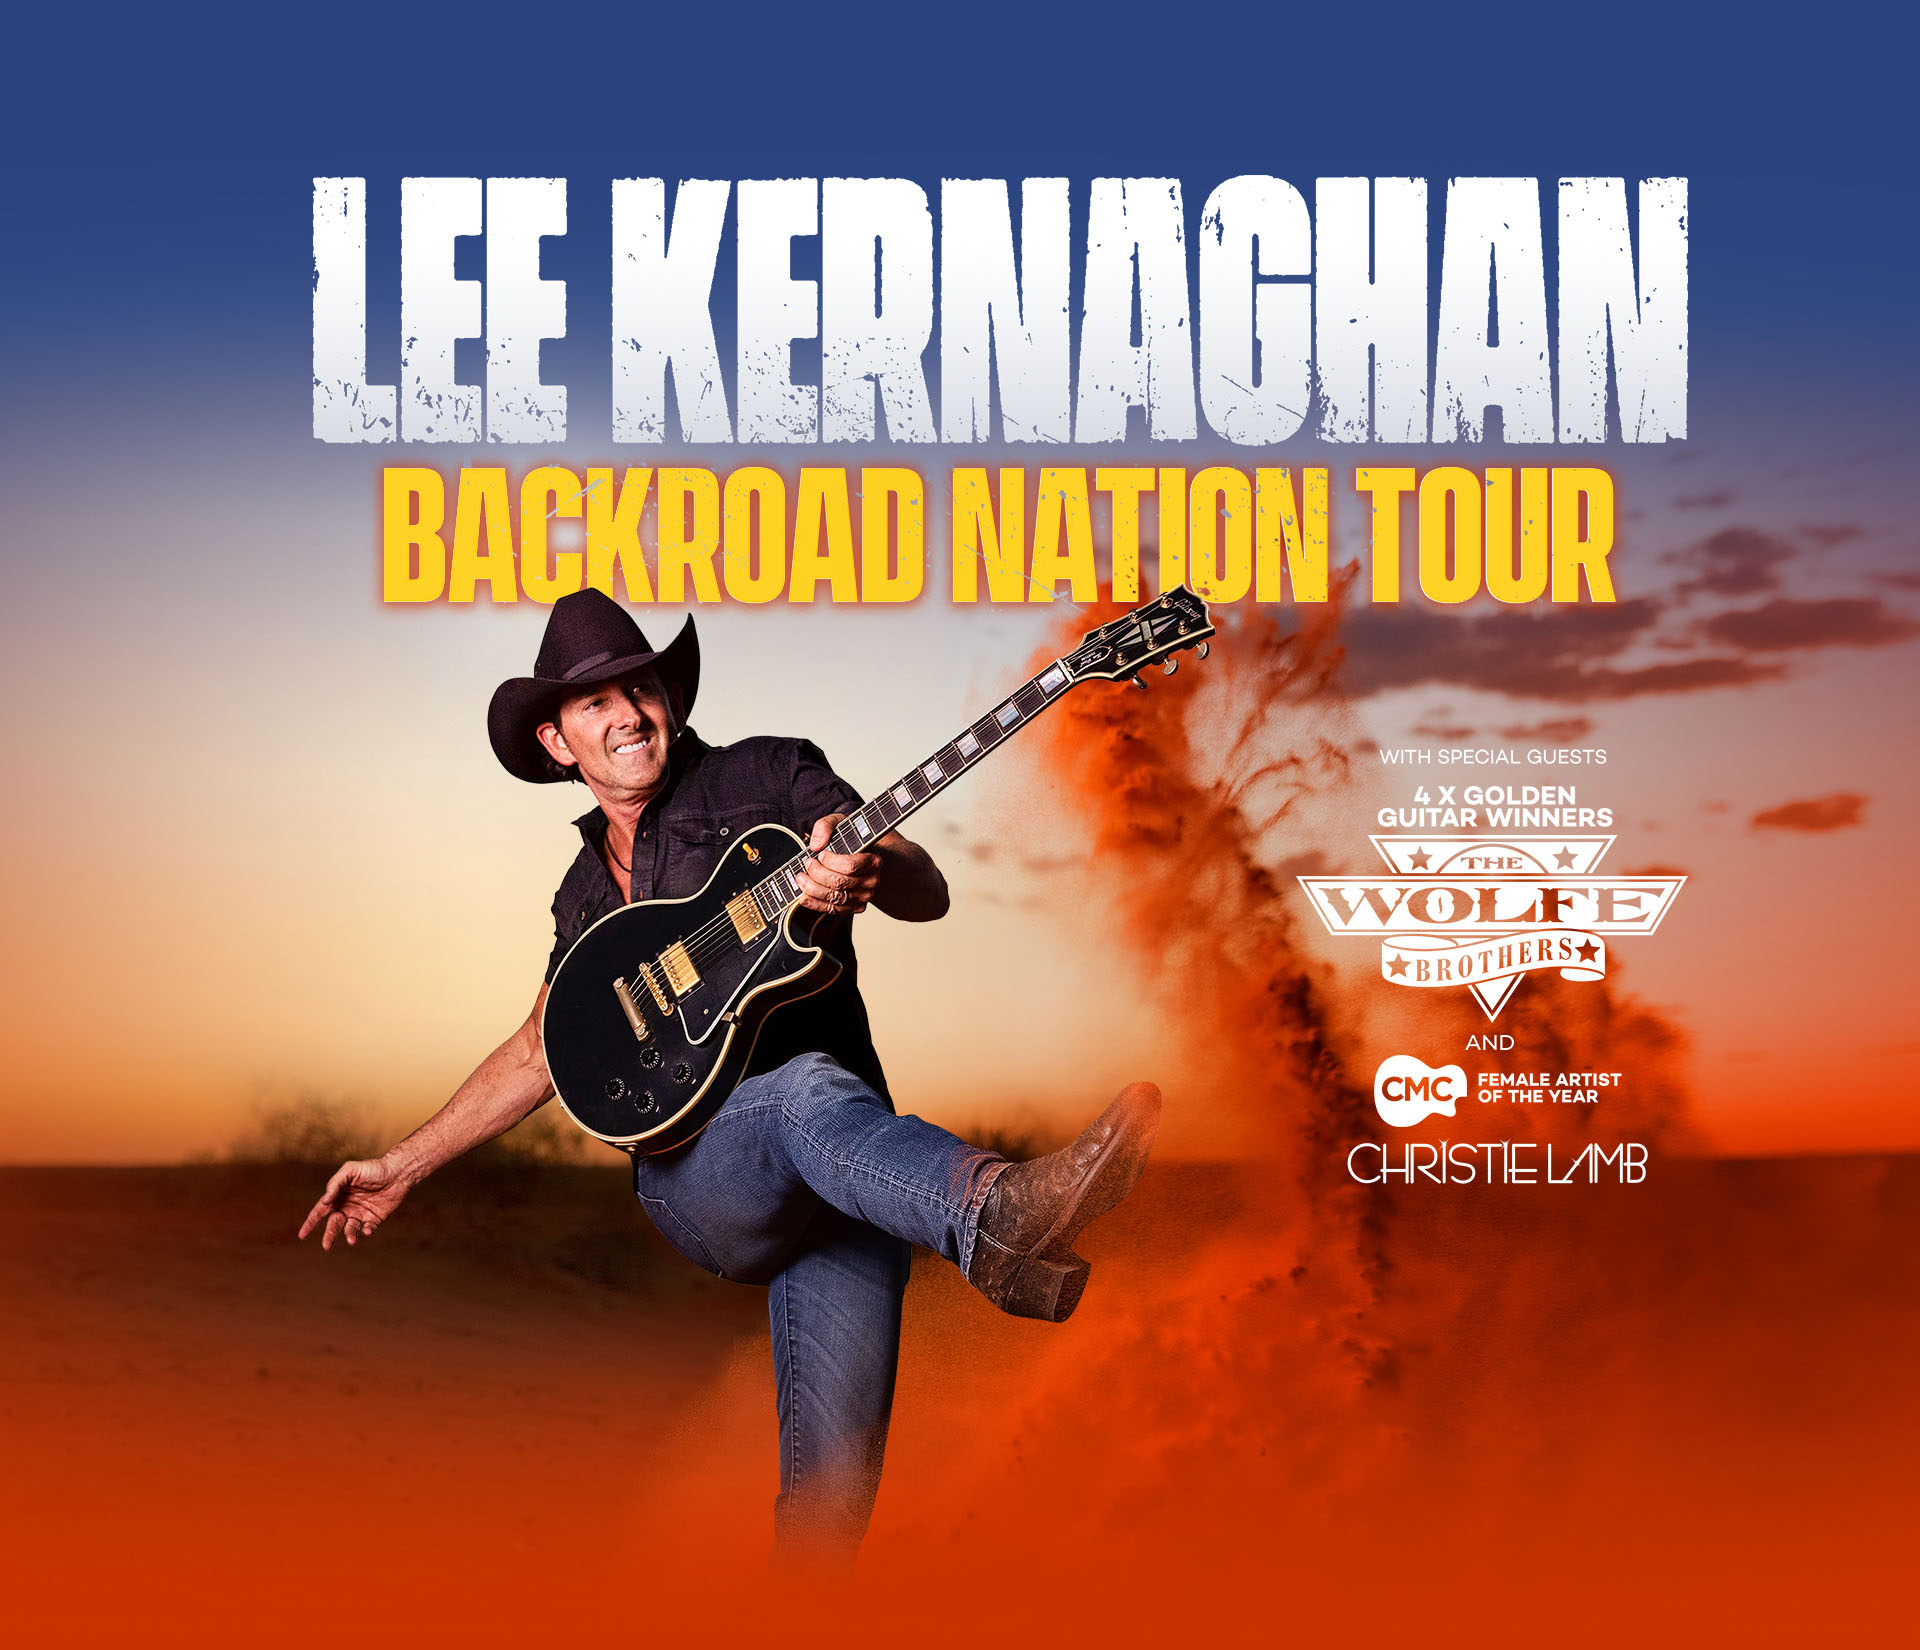 Lee Kernaghan Backroad Nation Tour